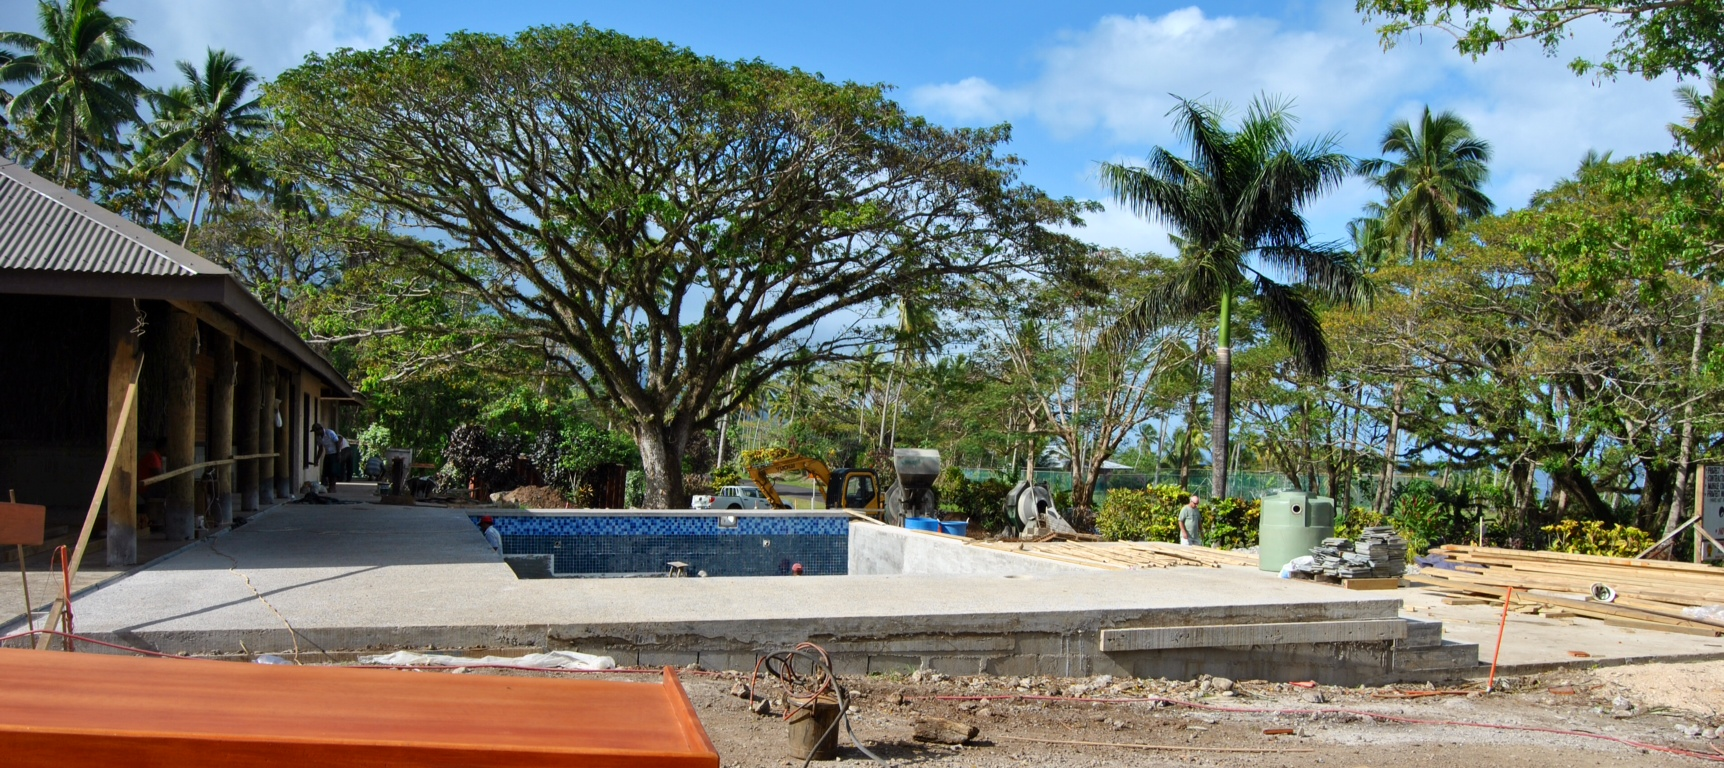 This is looking south from just outside Bure No. 1. In the foreground, our contractors are working on bed frames for the rooms. You can see a couple craftsmen working on tiling the pool.